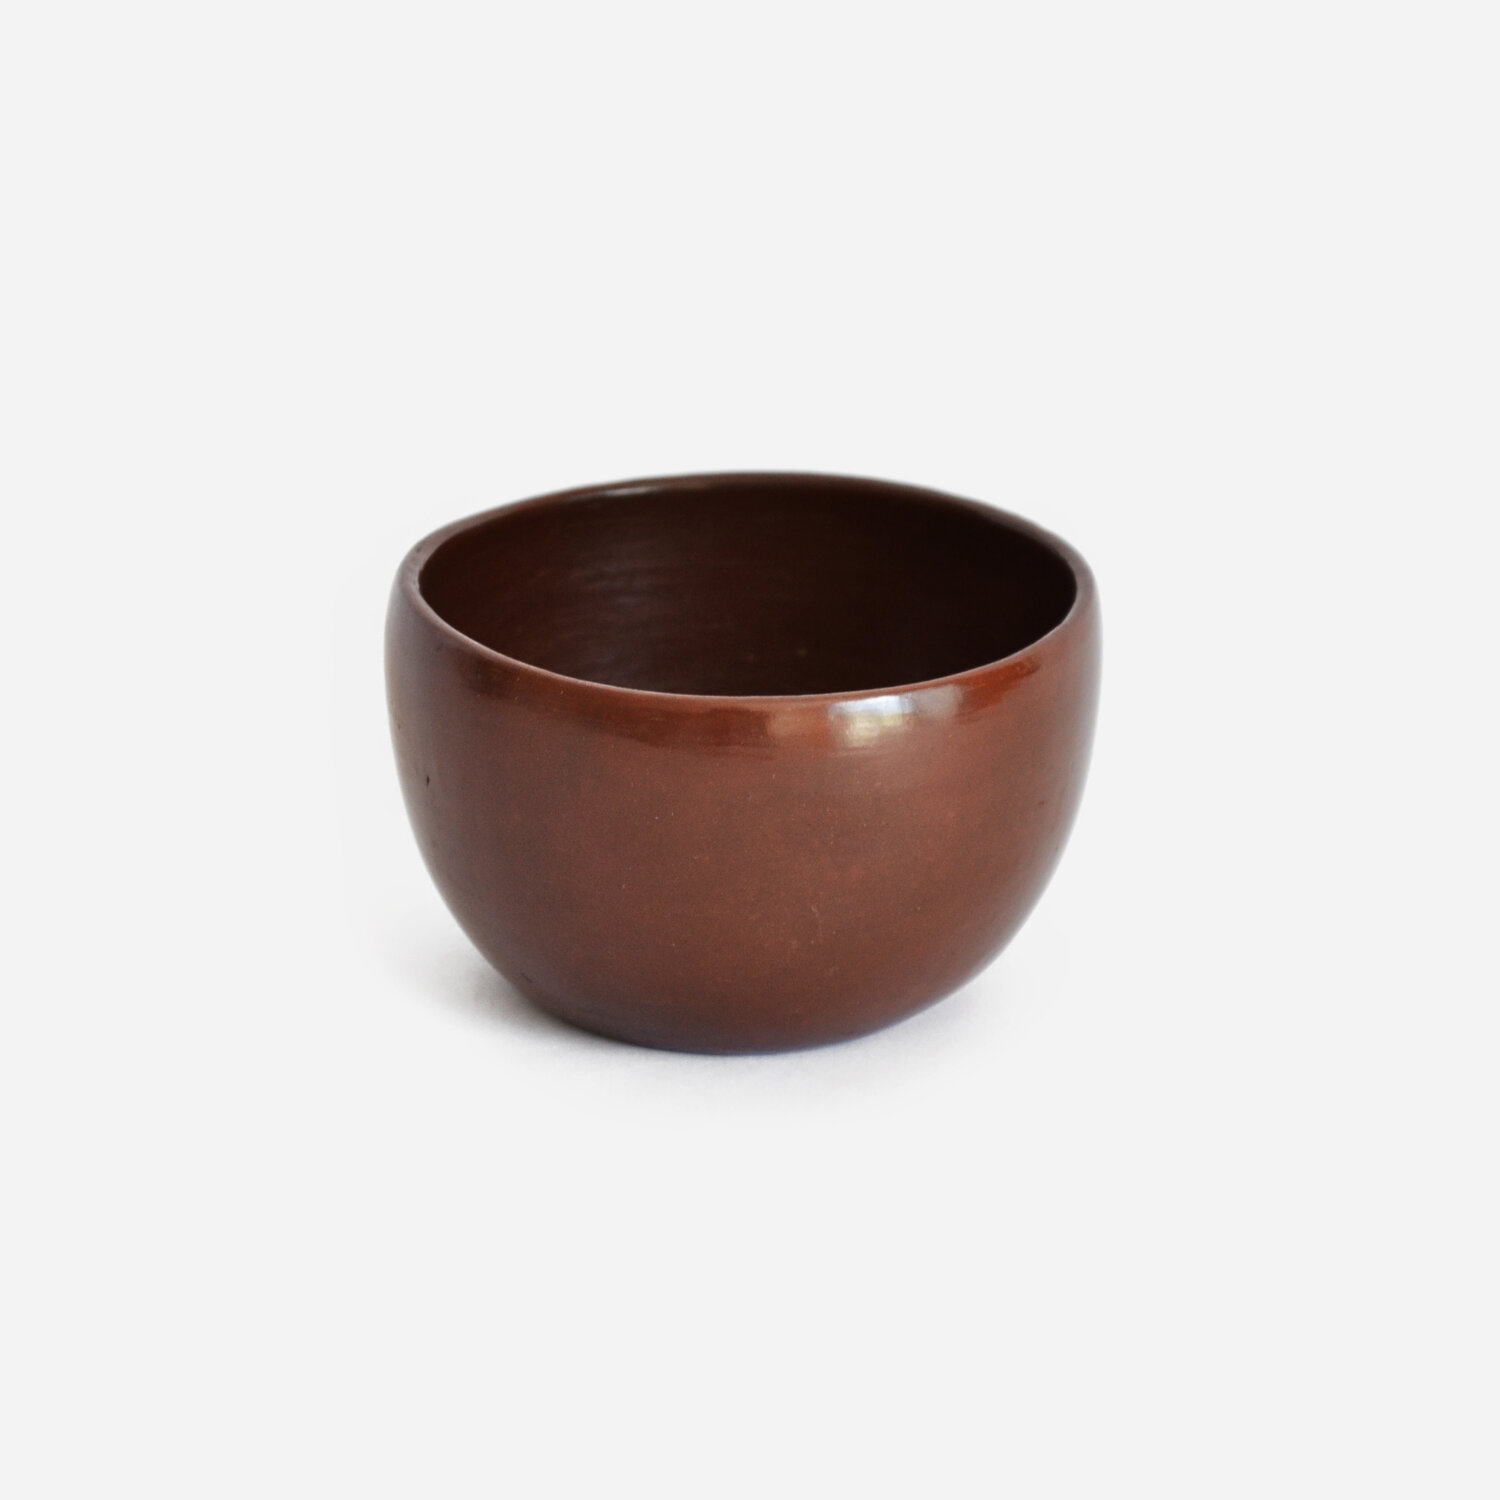 Set of 2 Small Red Bowls   Beeswax Finish by La Muerte Tiene Permiso on curated-crowd.com